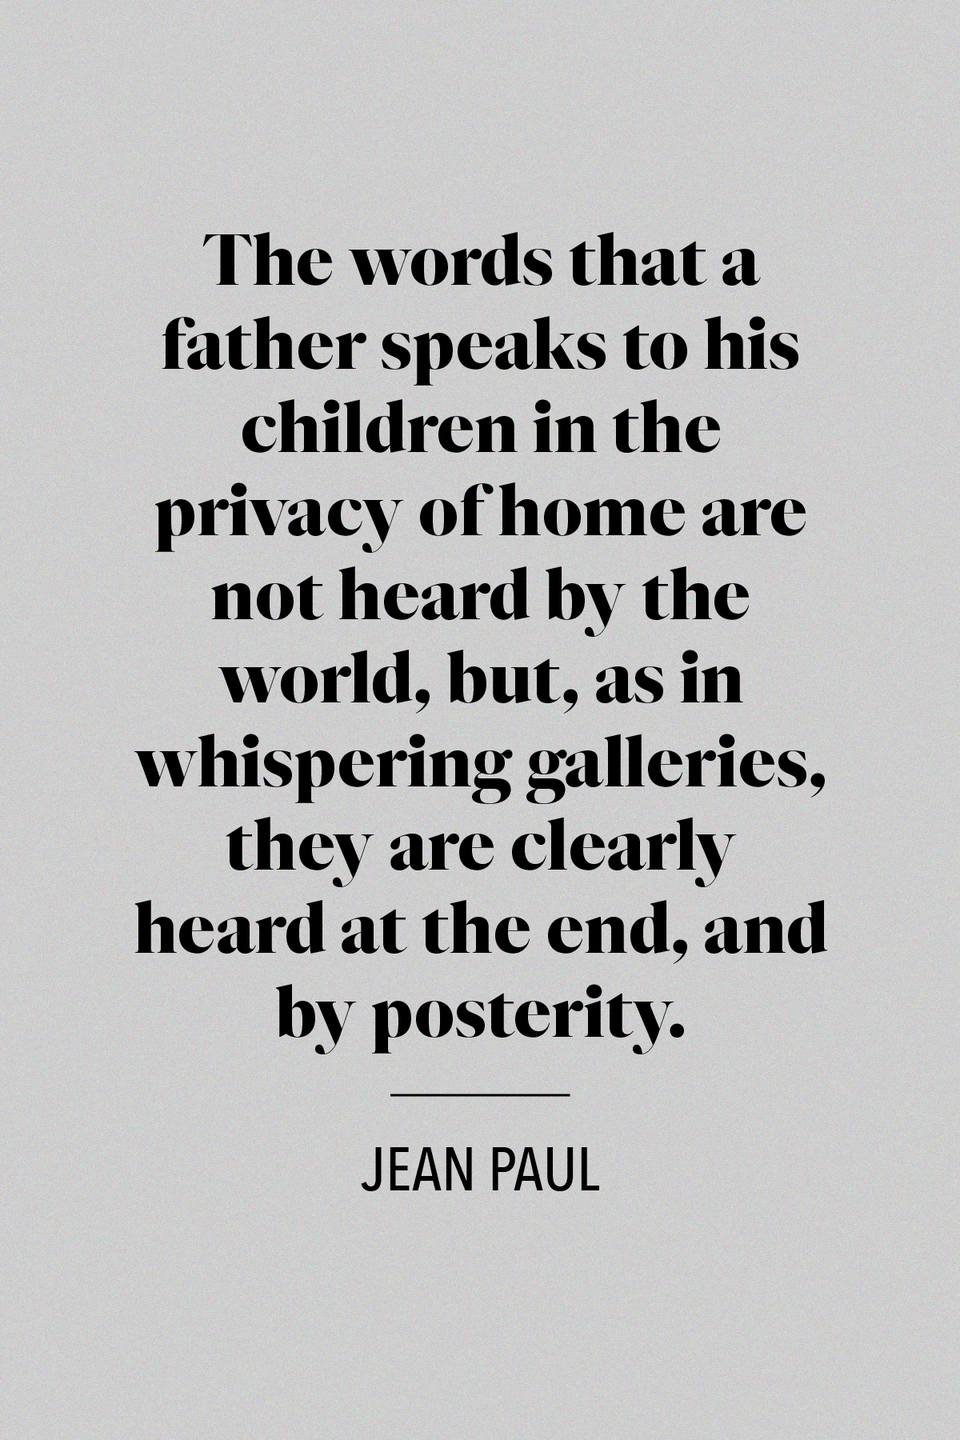 "<p>""The words that a father speaks to his children in the privacy of home are not heard by the world, but, as in whispering galleries, they are clearly heard at the end, and by posterity,"" Jean Paul, a prominent German writer during the Romanticism movement, said in his book <em><a href=""https://www.amazon.com/dp/0341898740/ref=dp-kindle-redirect?_encoding=UTF8&btkr=1&tag=syn-yahoo-20&ascsubtag=%5Bartid%7C10072.g.32909234%5Bsrc%7Cyahoo-us"" rel=""nofollow noopener"" target=""_blank"" data-ylk=""slk:Levana; Or, the Doctrine of Education"" class=""link rapid-noclick-resp"">Levana; Or, the Doctrine of Education</a></em>.</p>"